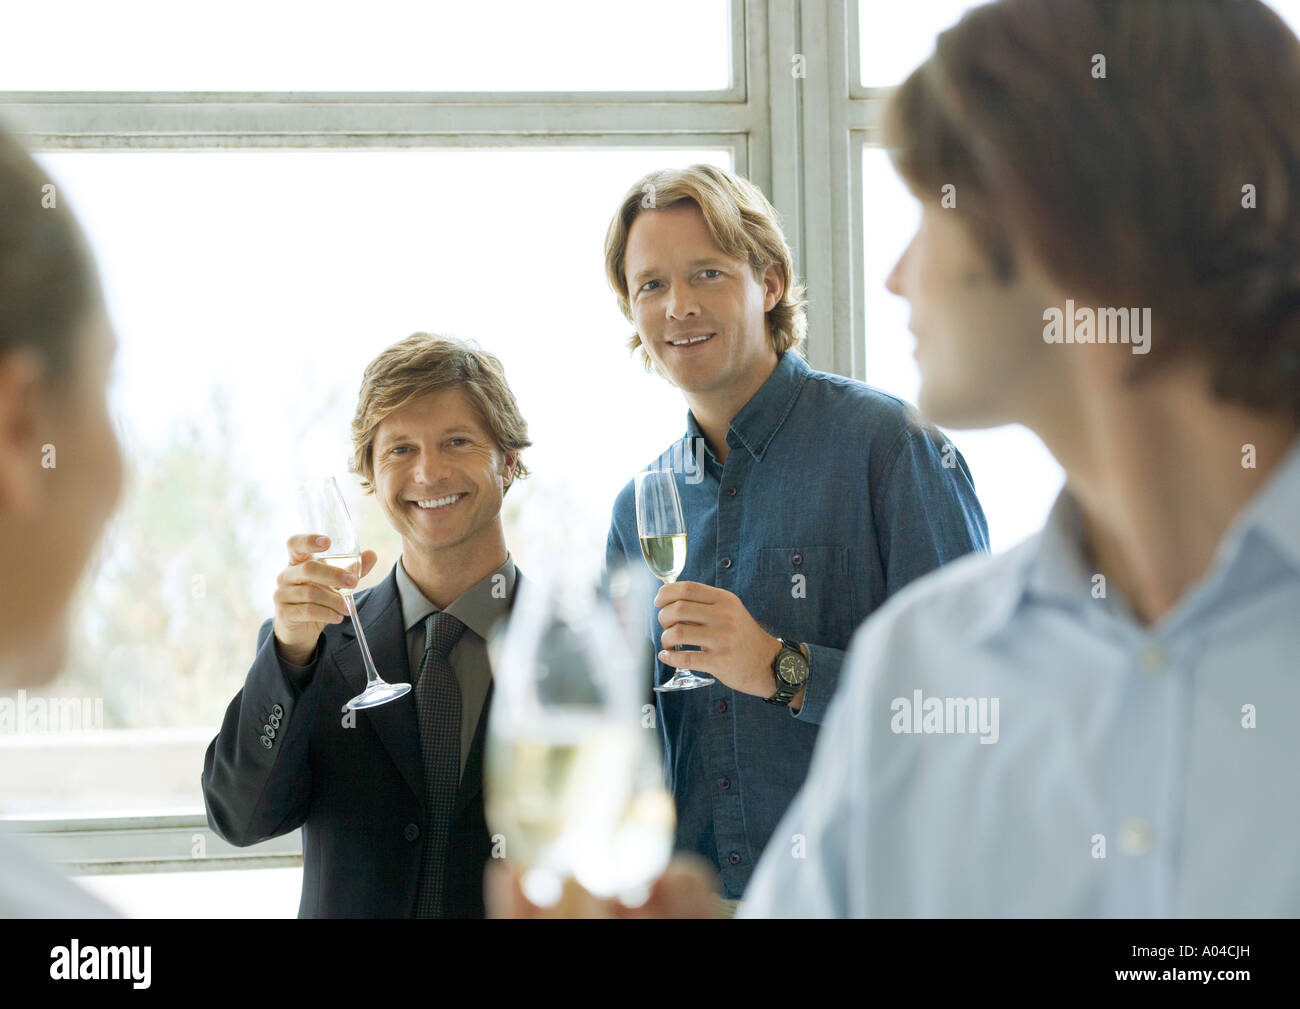 Men holding up glasses of champagne during cocktail party - Stock Image